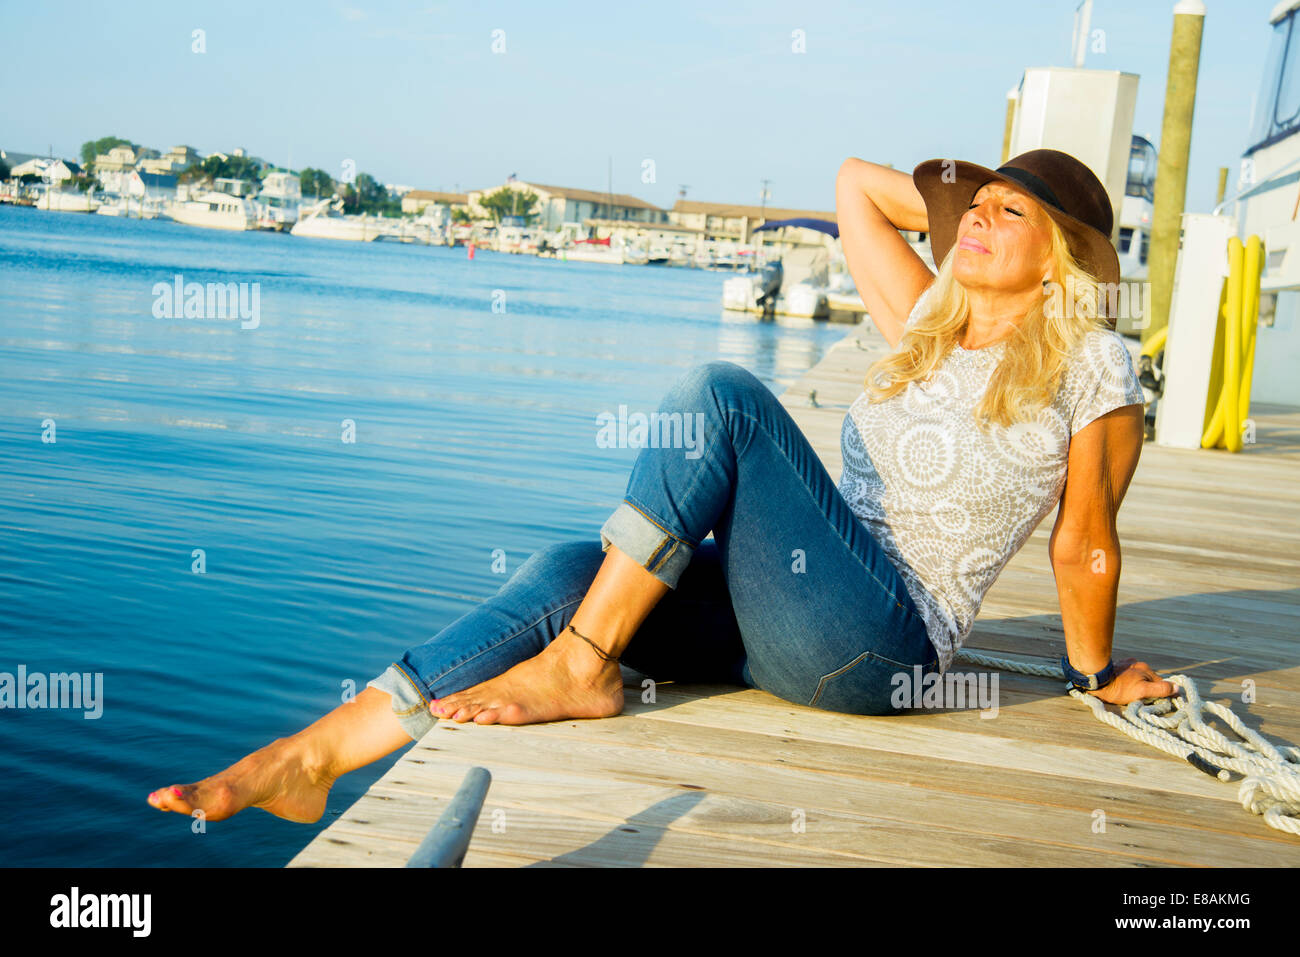 Mature woman sitting on harbor pier with eyes closed, Monmouth Beach, New Jersey, USA Stock Photo